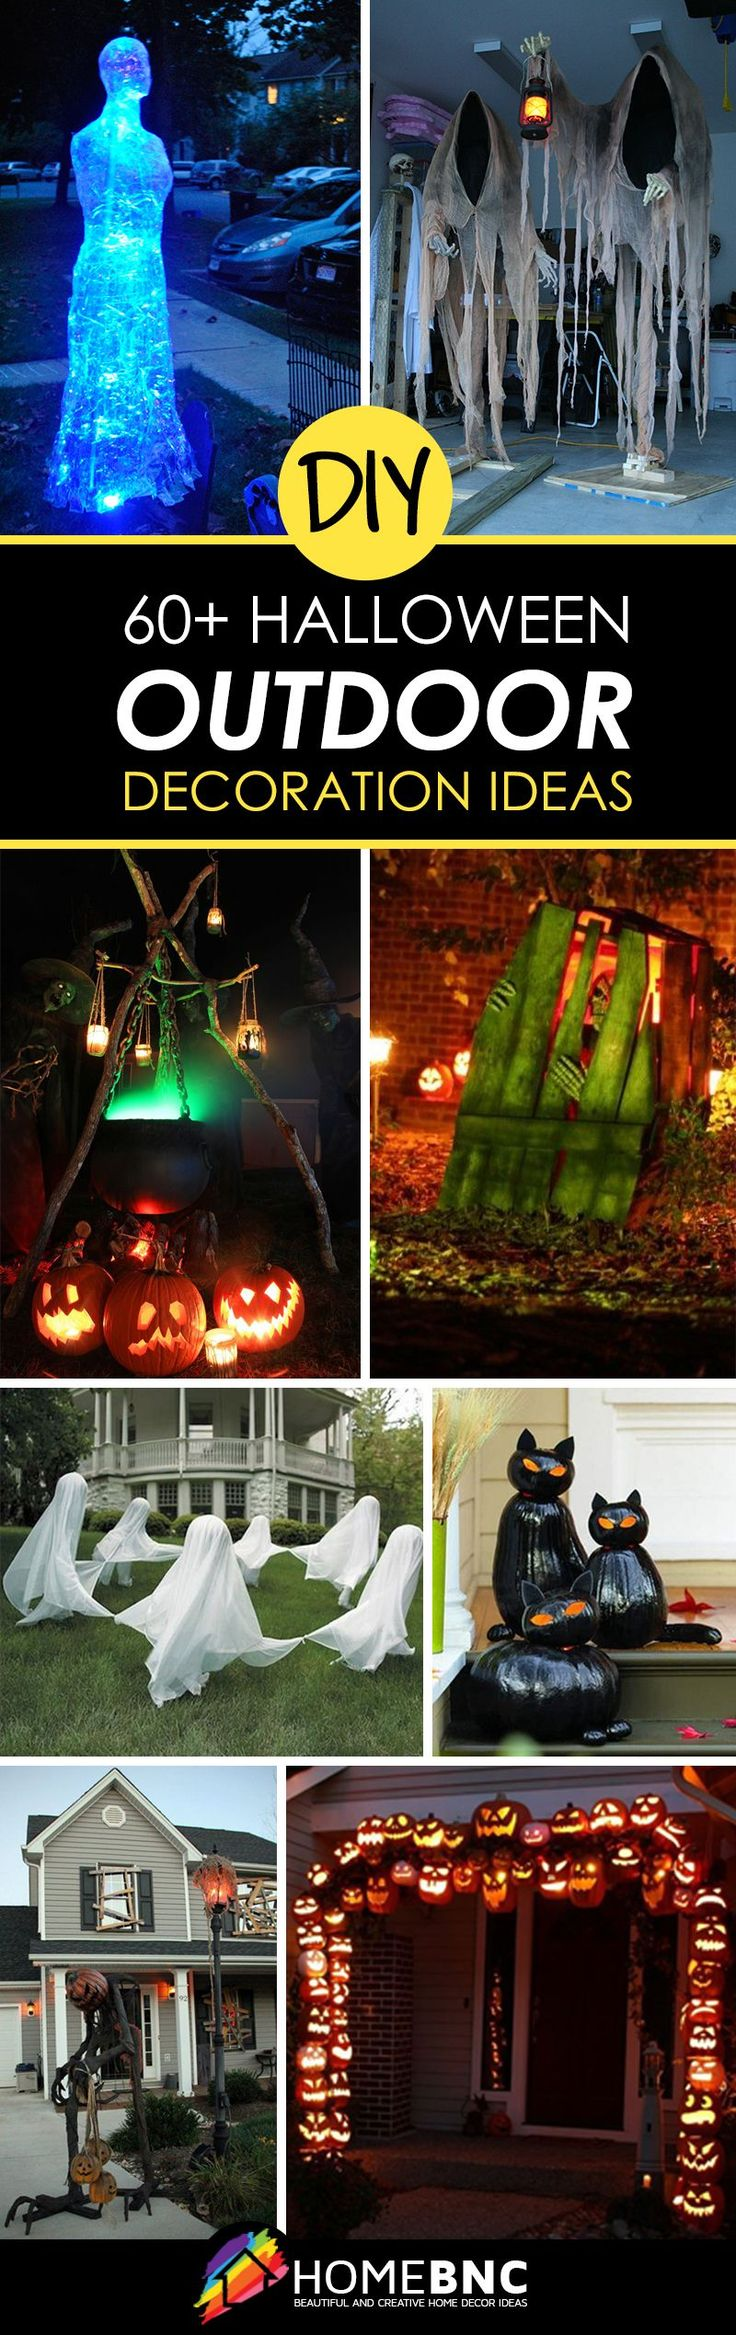 Diy outdoor halloween decor - 50 Best Diy Halloween Outdoor Decorations For 2016